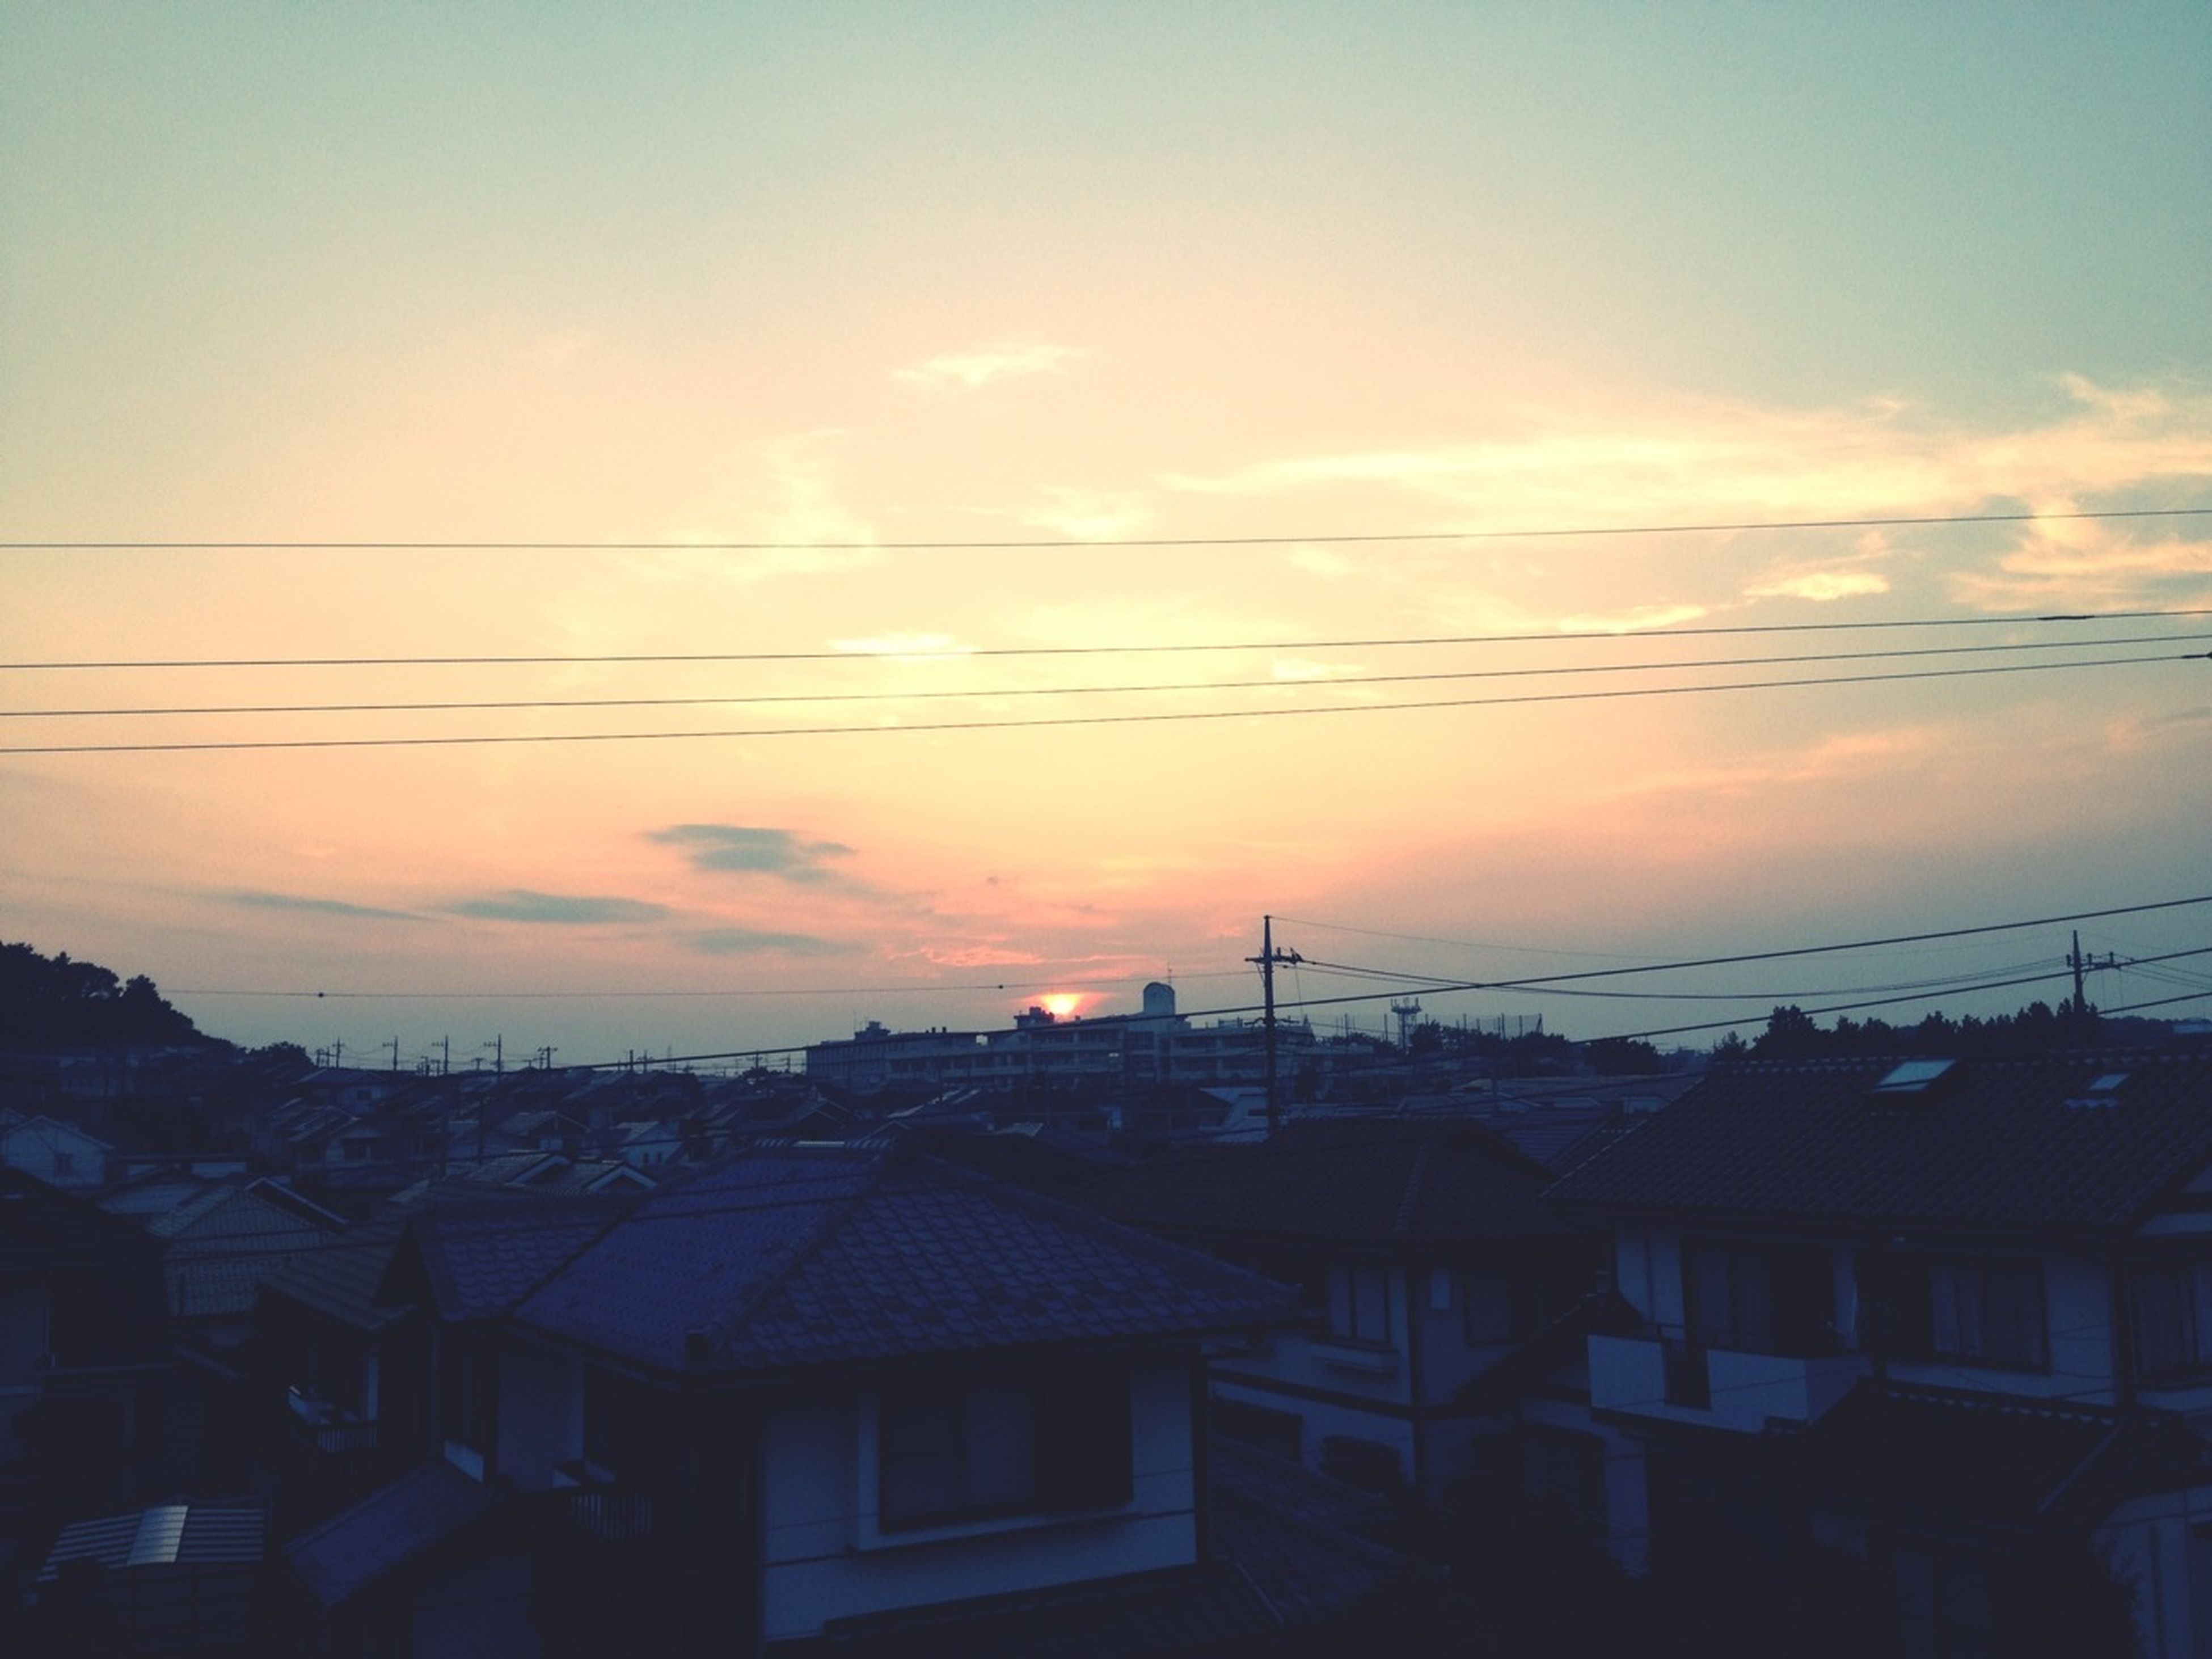 sunset, building exterior, architecture, built structure, sky, orange color, house, residential structure, cloud - sky, residential building, roof, silhouette, city, residential district, town, cloud, outdoors, no people, building, nature